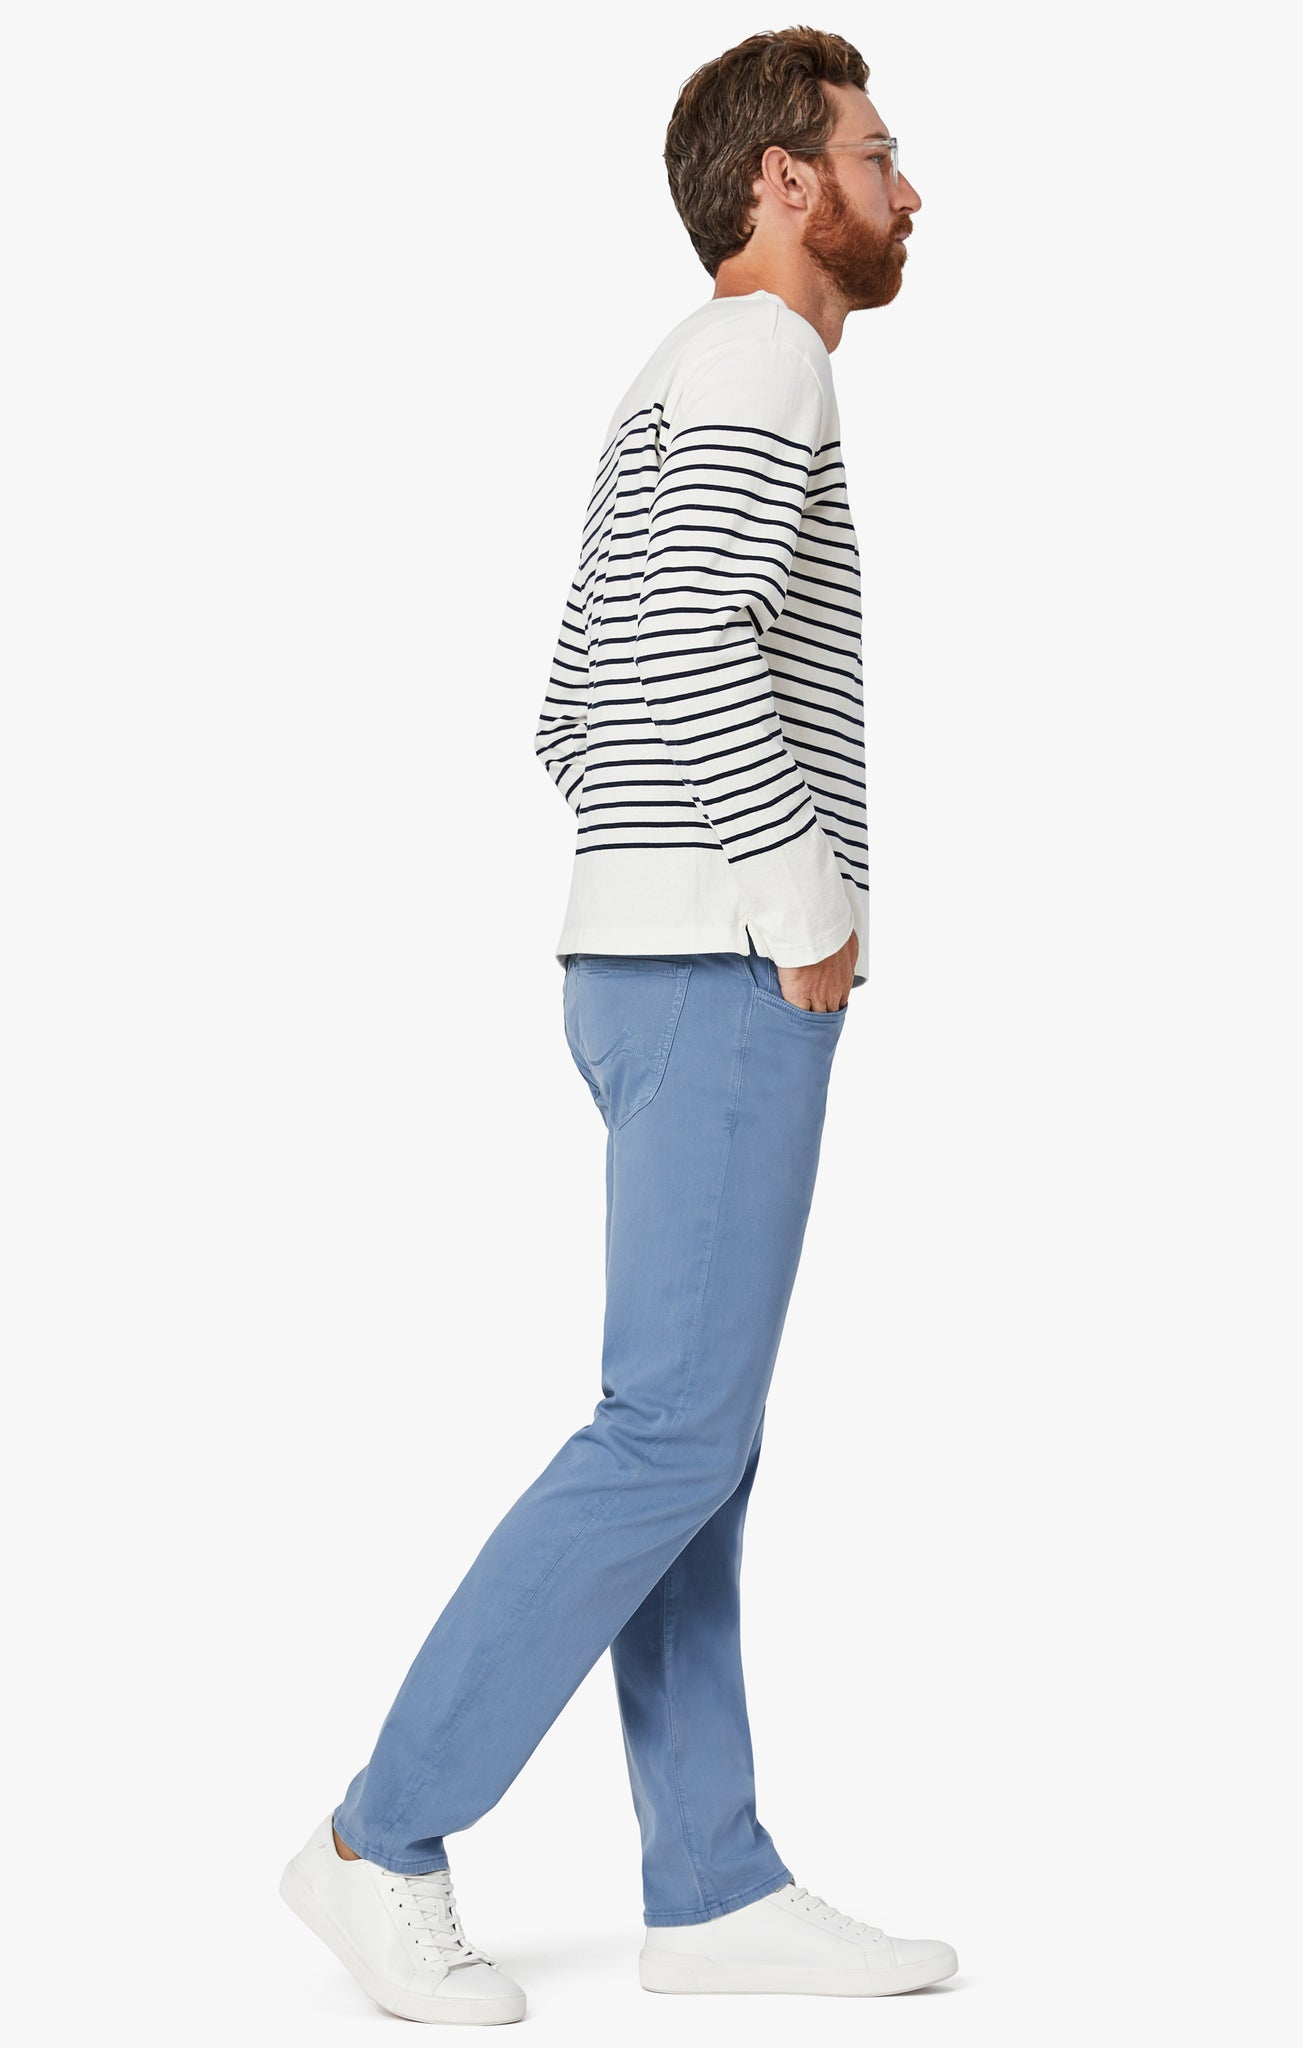 Courage Straight Leg Pants in Blue Twill